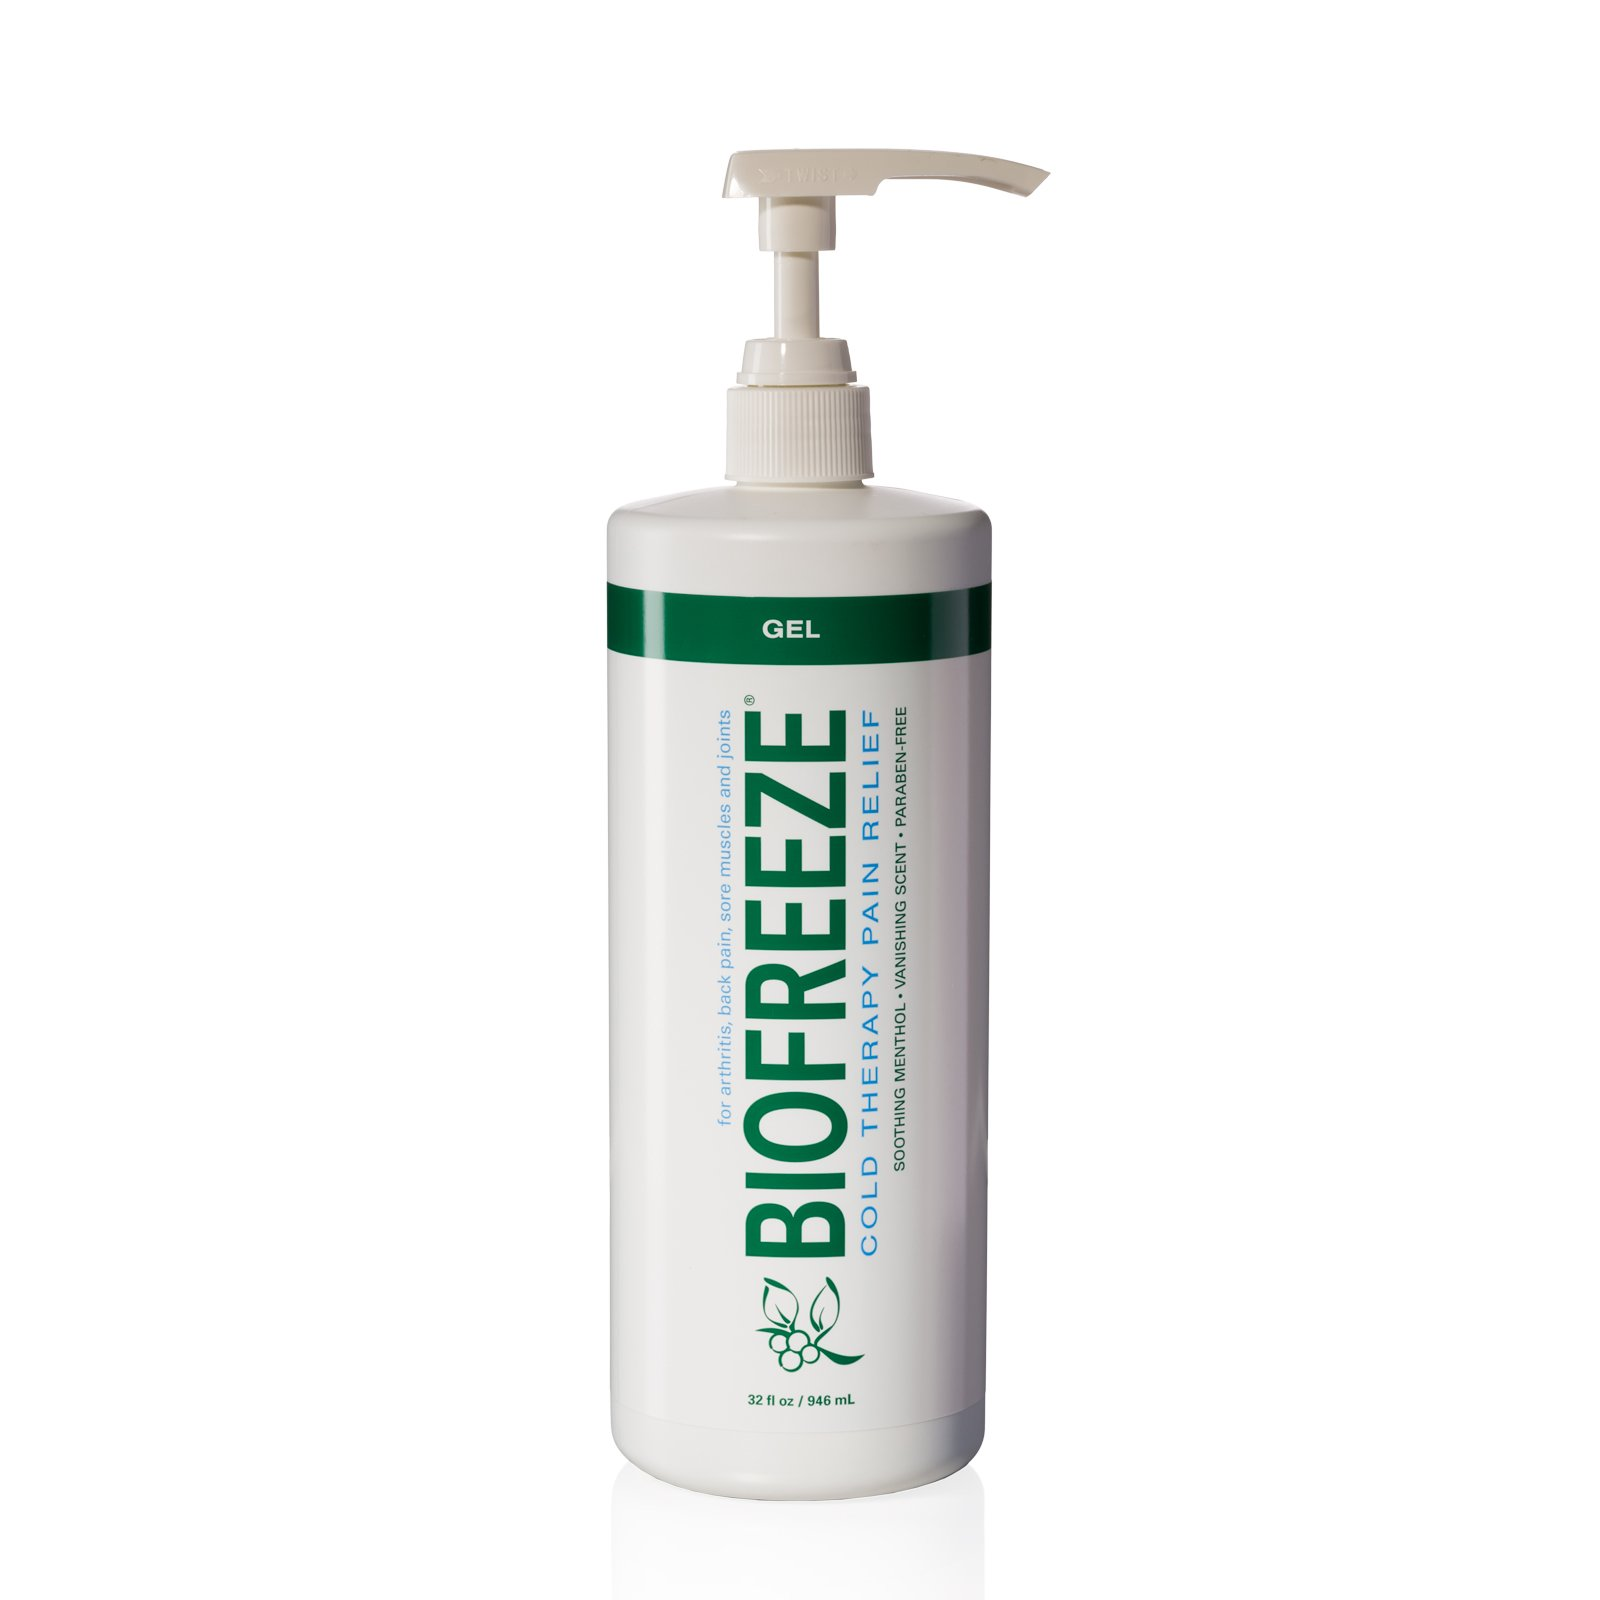 Biofreeze Pain Relief Gel for Arthritis, 32 oz. Bottle With Pump, Fast Acting & Long Lasting Cooling Pain Reliever for Muscle, Joint, & Back Pain, Cold Topical Analgesic with Original Green Formula